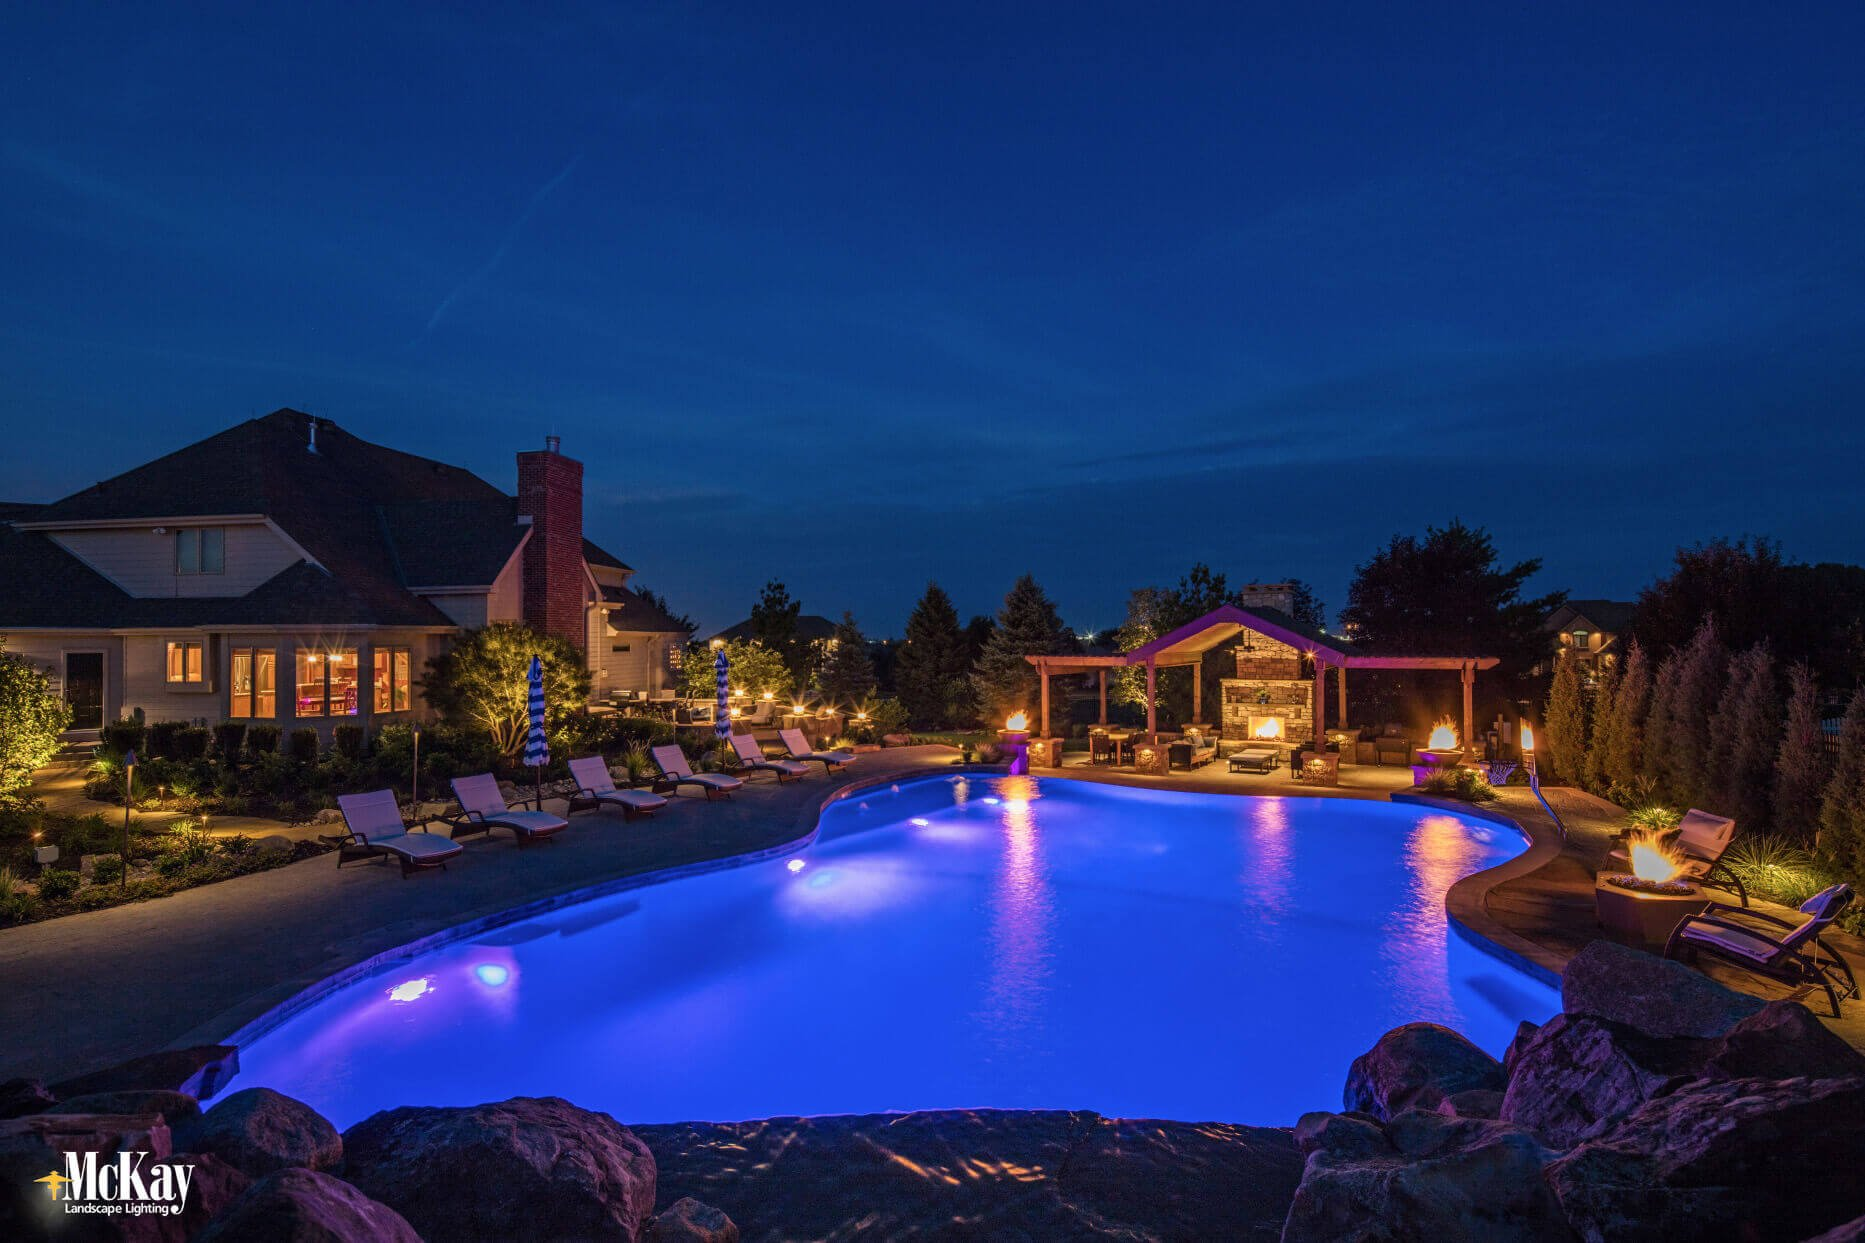 McKay Landscape Lighting Photos Featured in Landscape Contractor